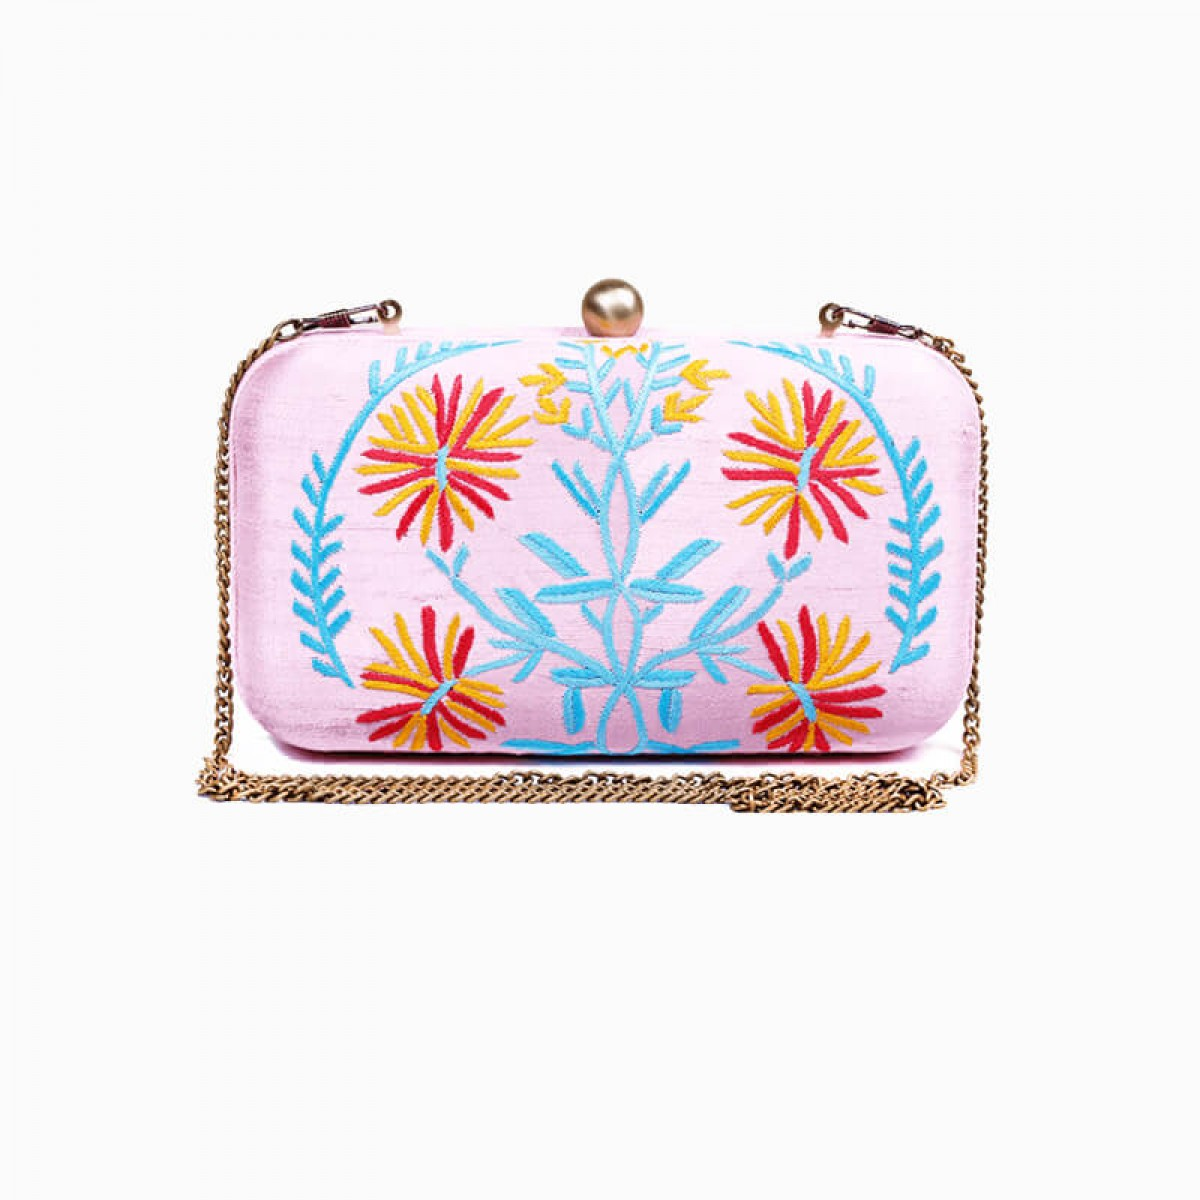 Evening Raw Silk Embroidery Clutch Bag - Pink